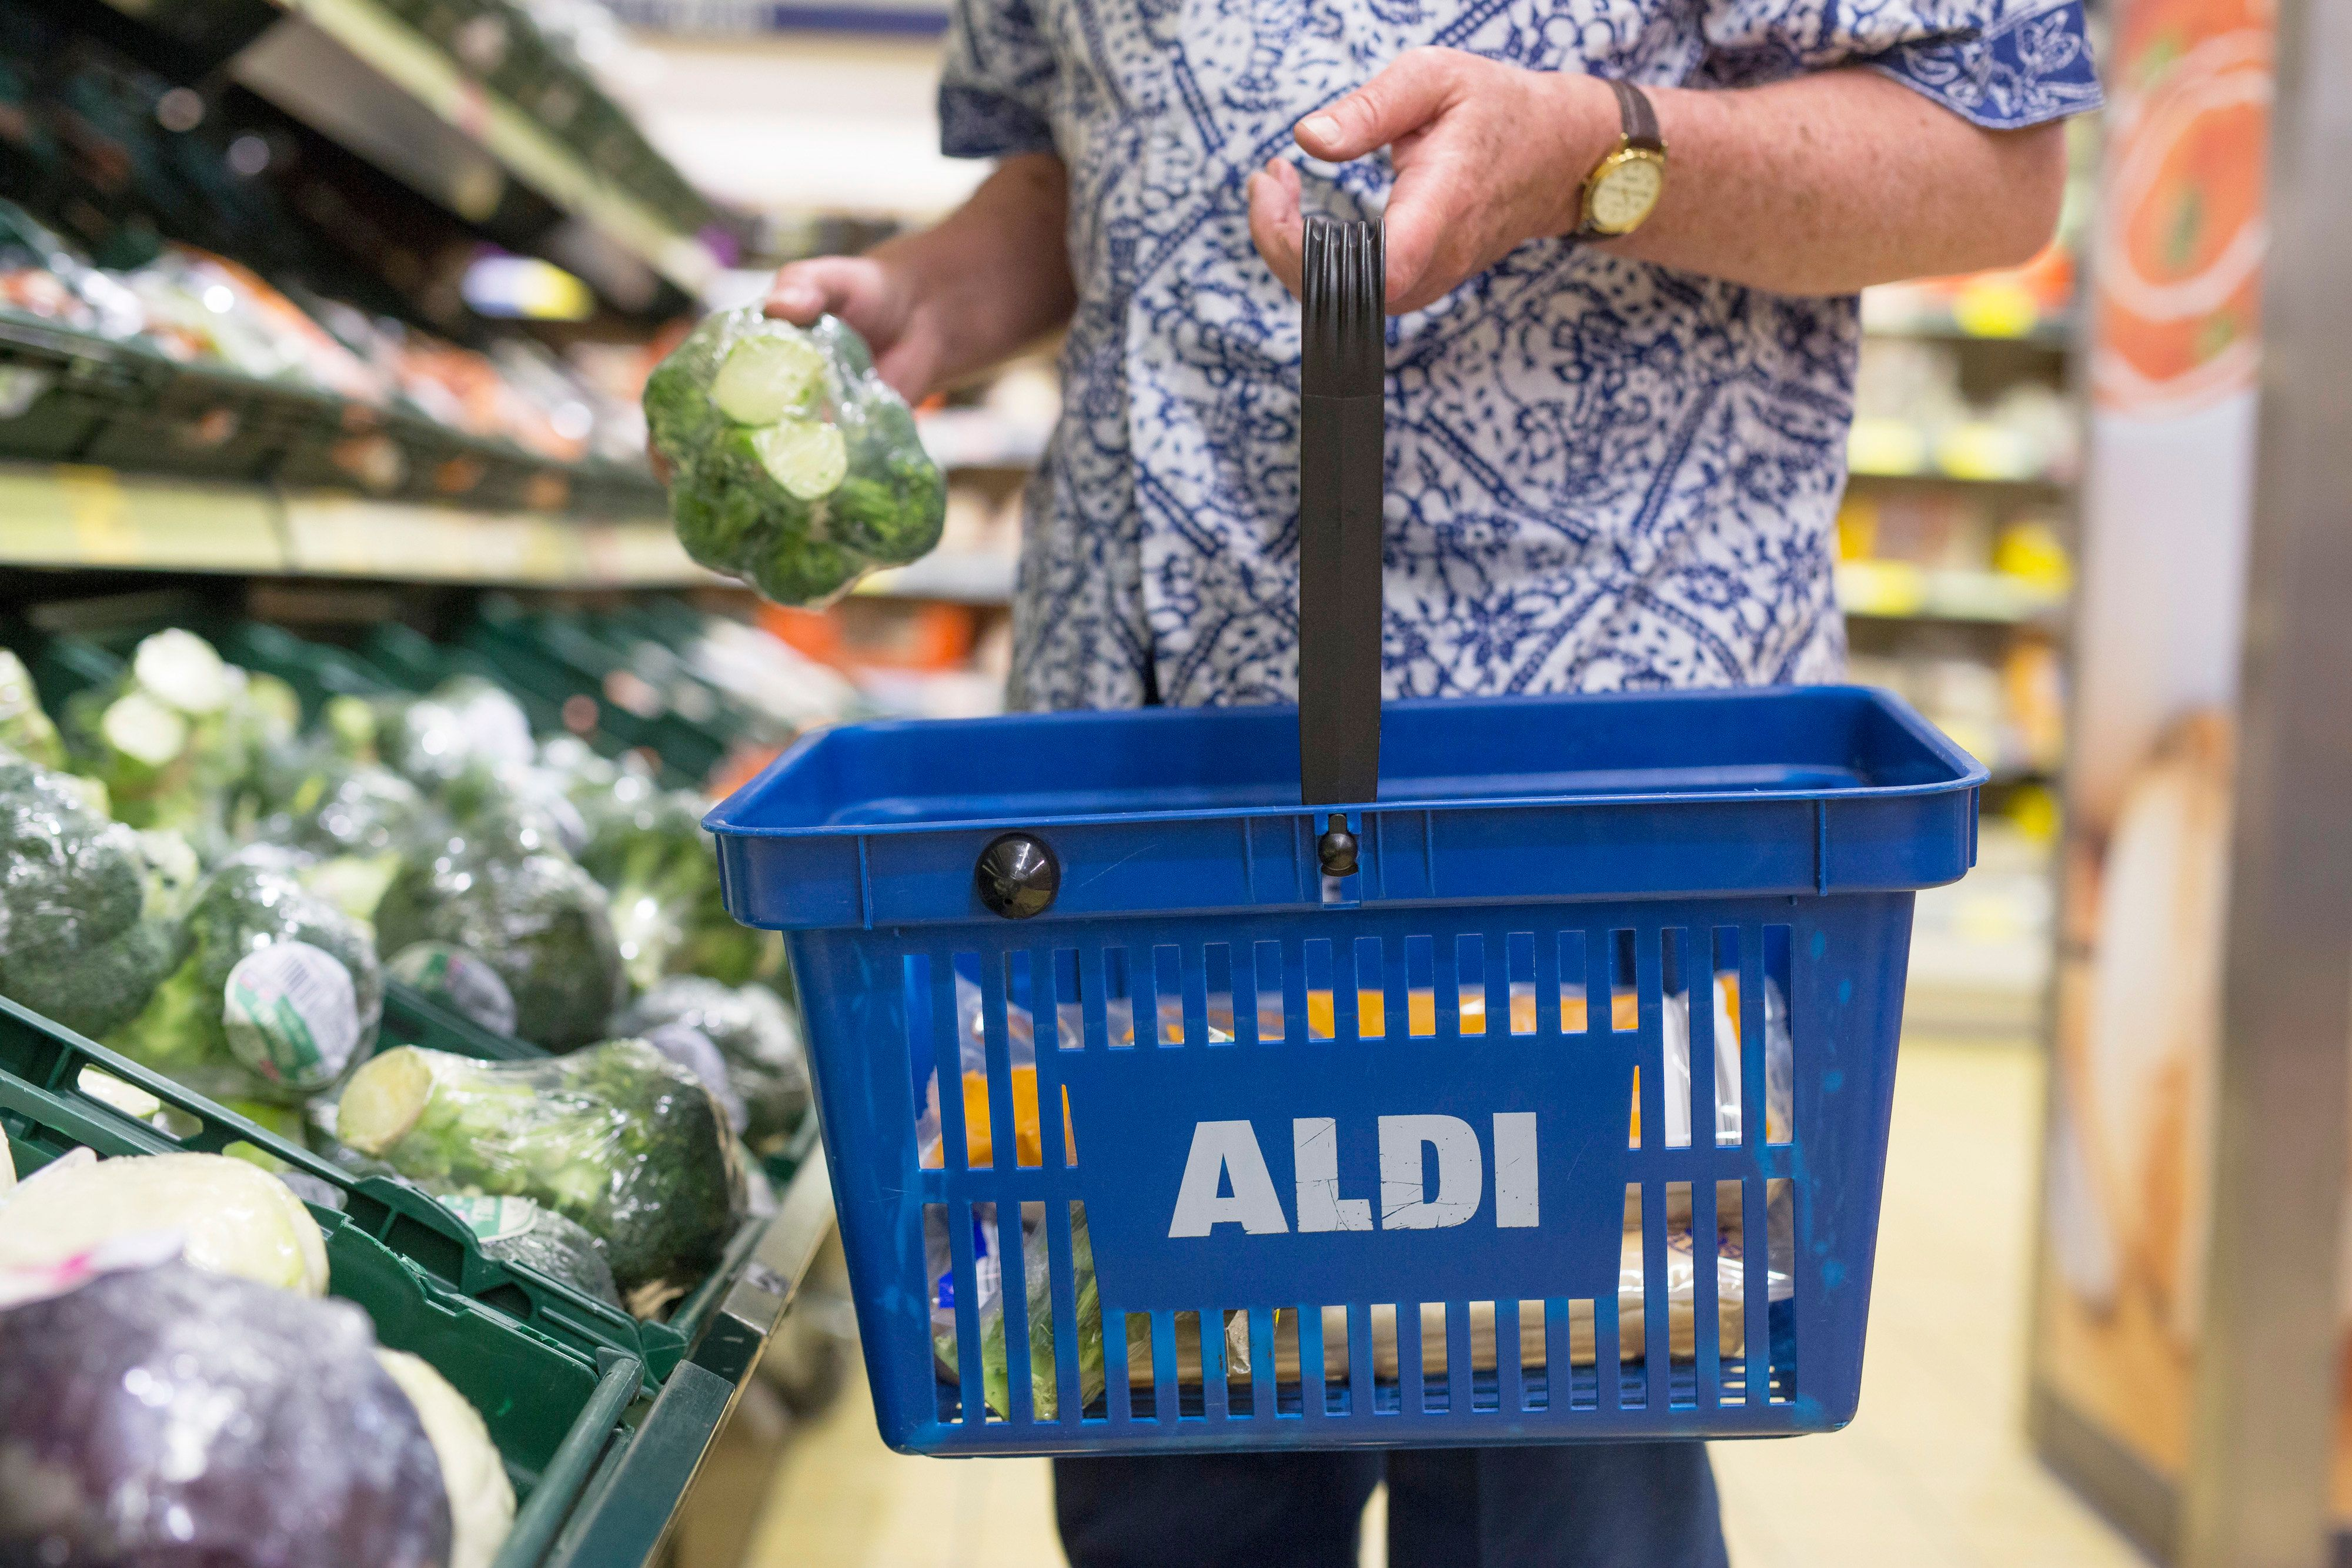 Aldi Shares Heartwarming Plan To Help Those In Need This